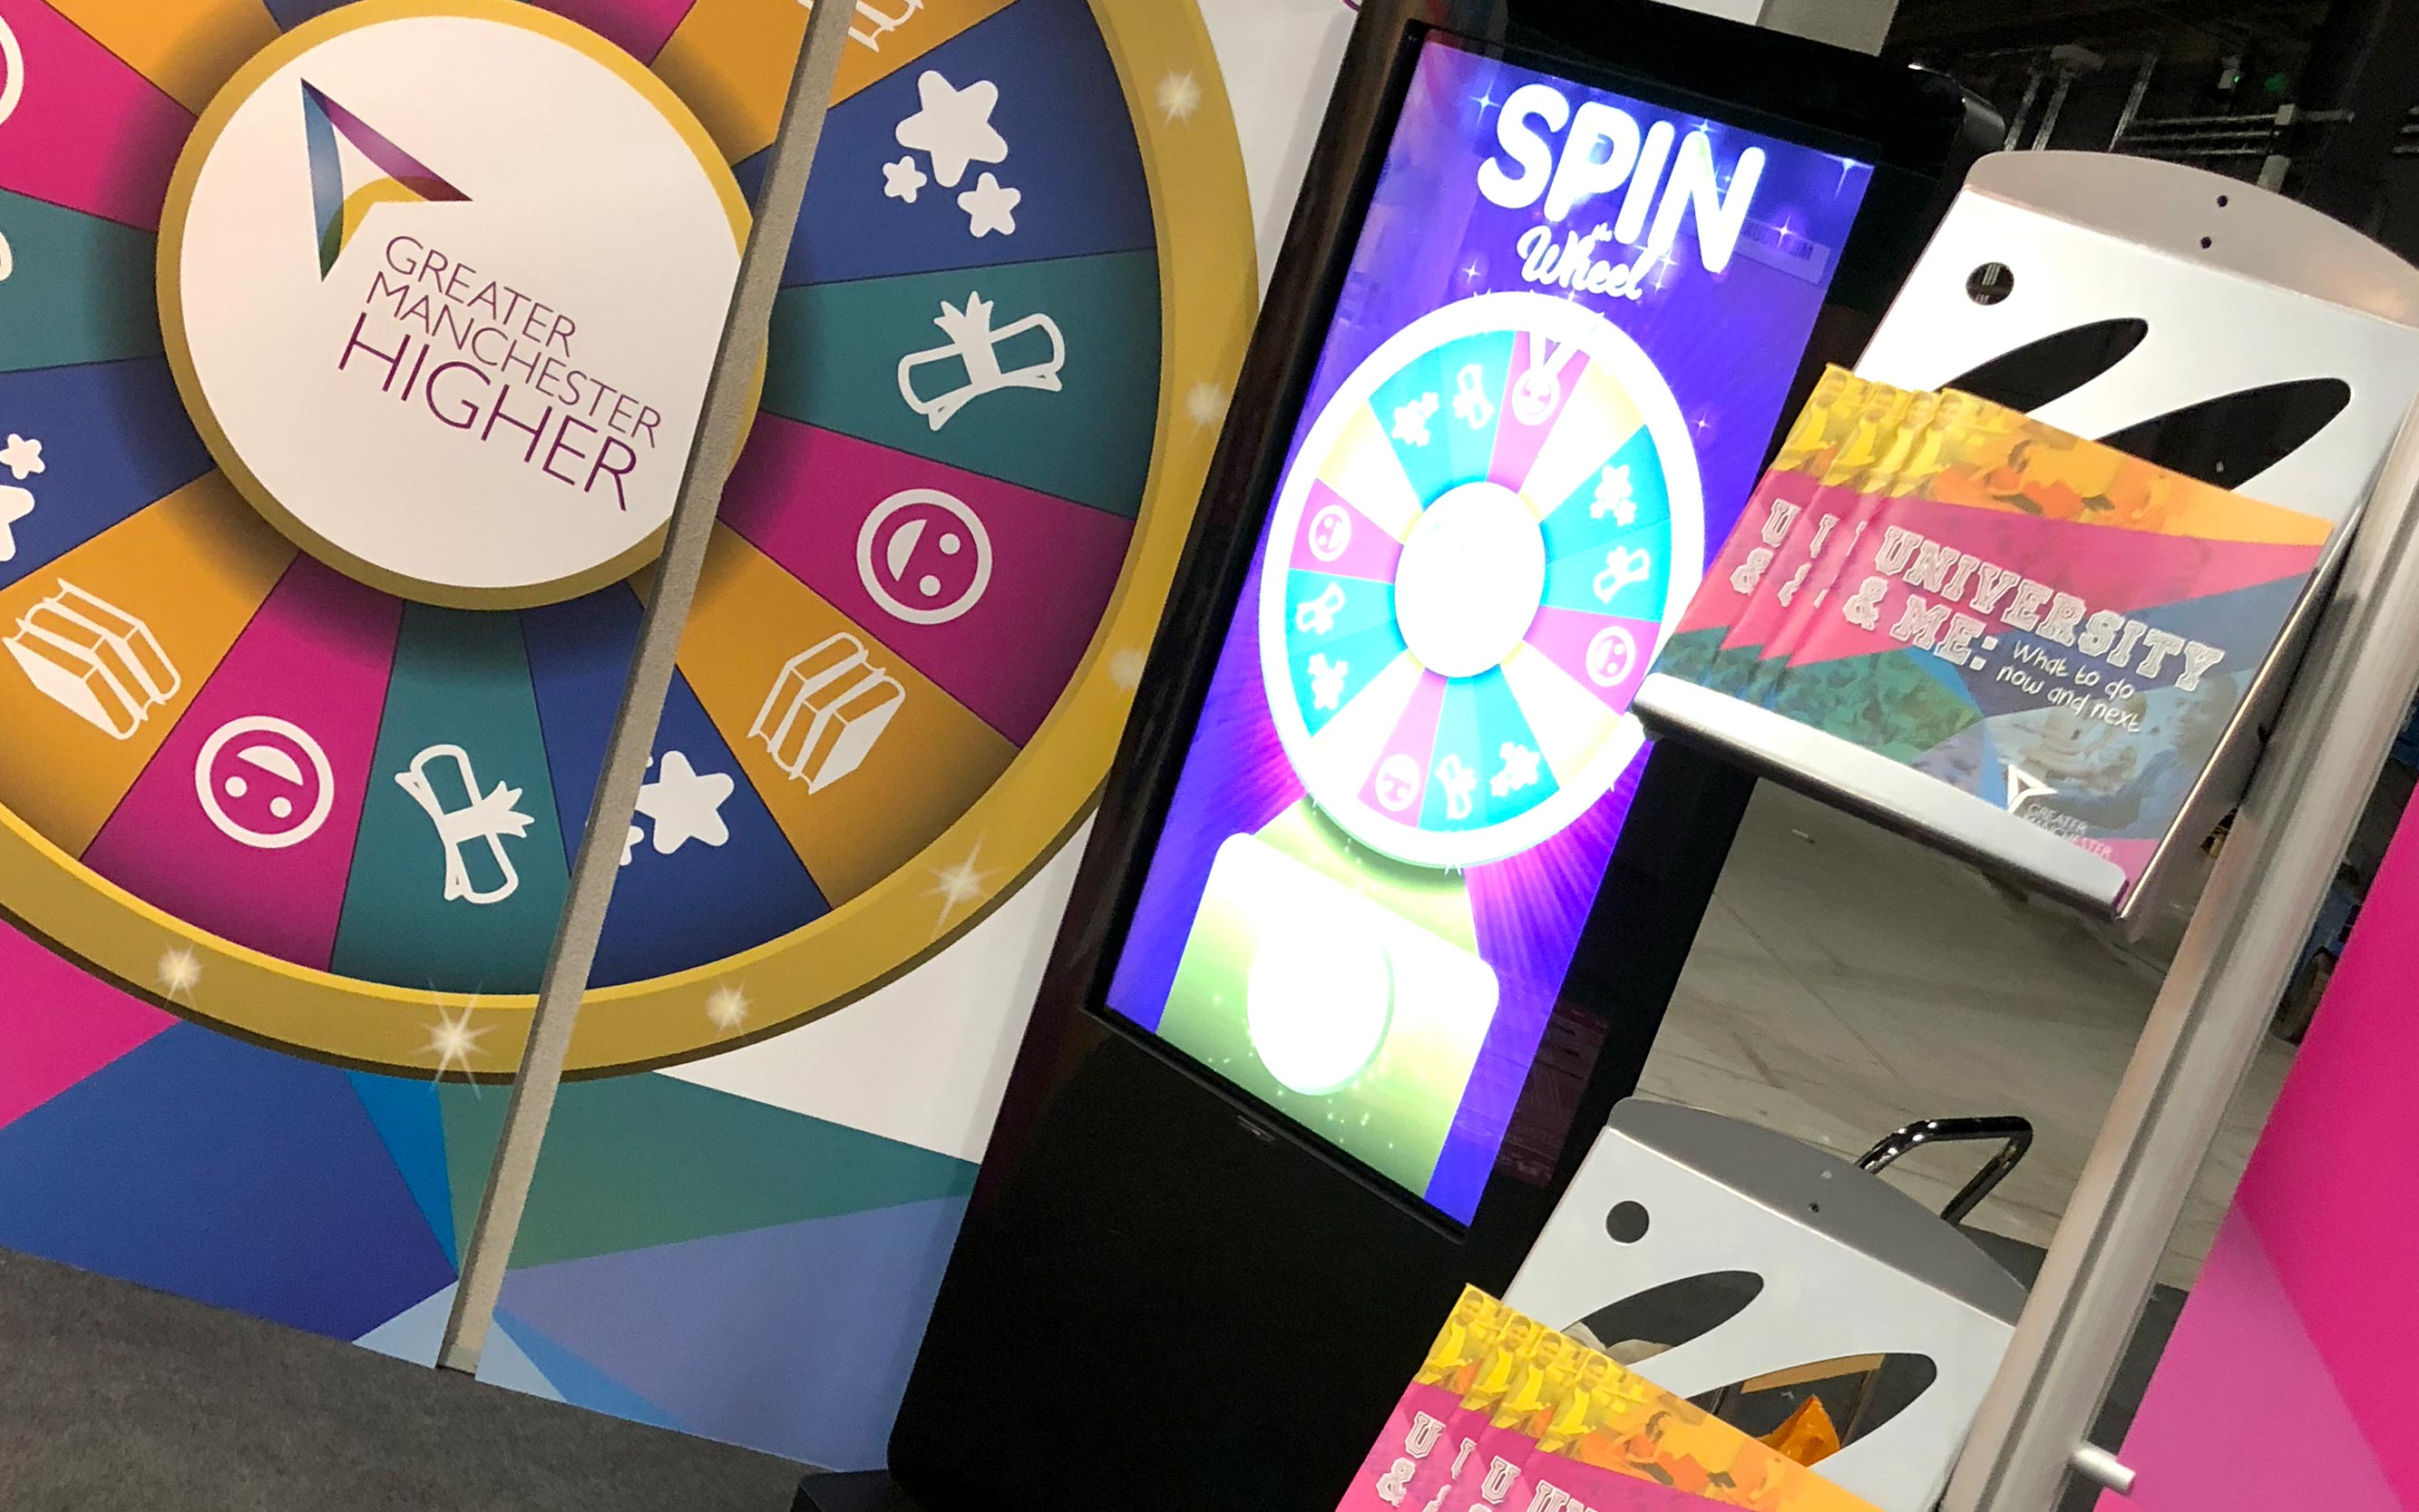 Exhibition Stand Design And Build Manchester : Greater manchester higher u nectar creative u graphic design